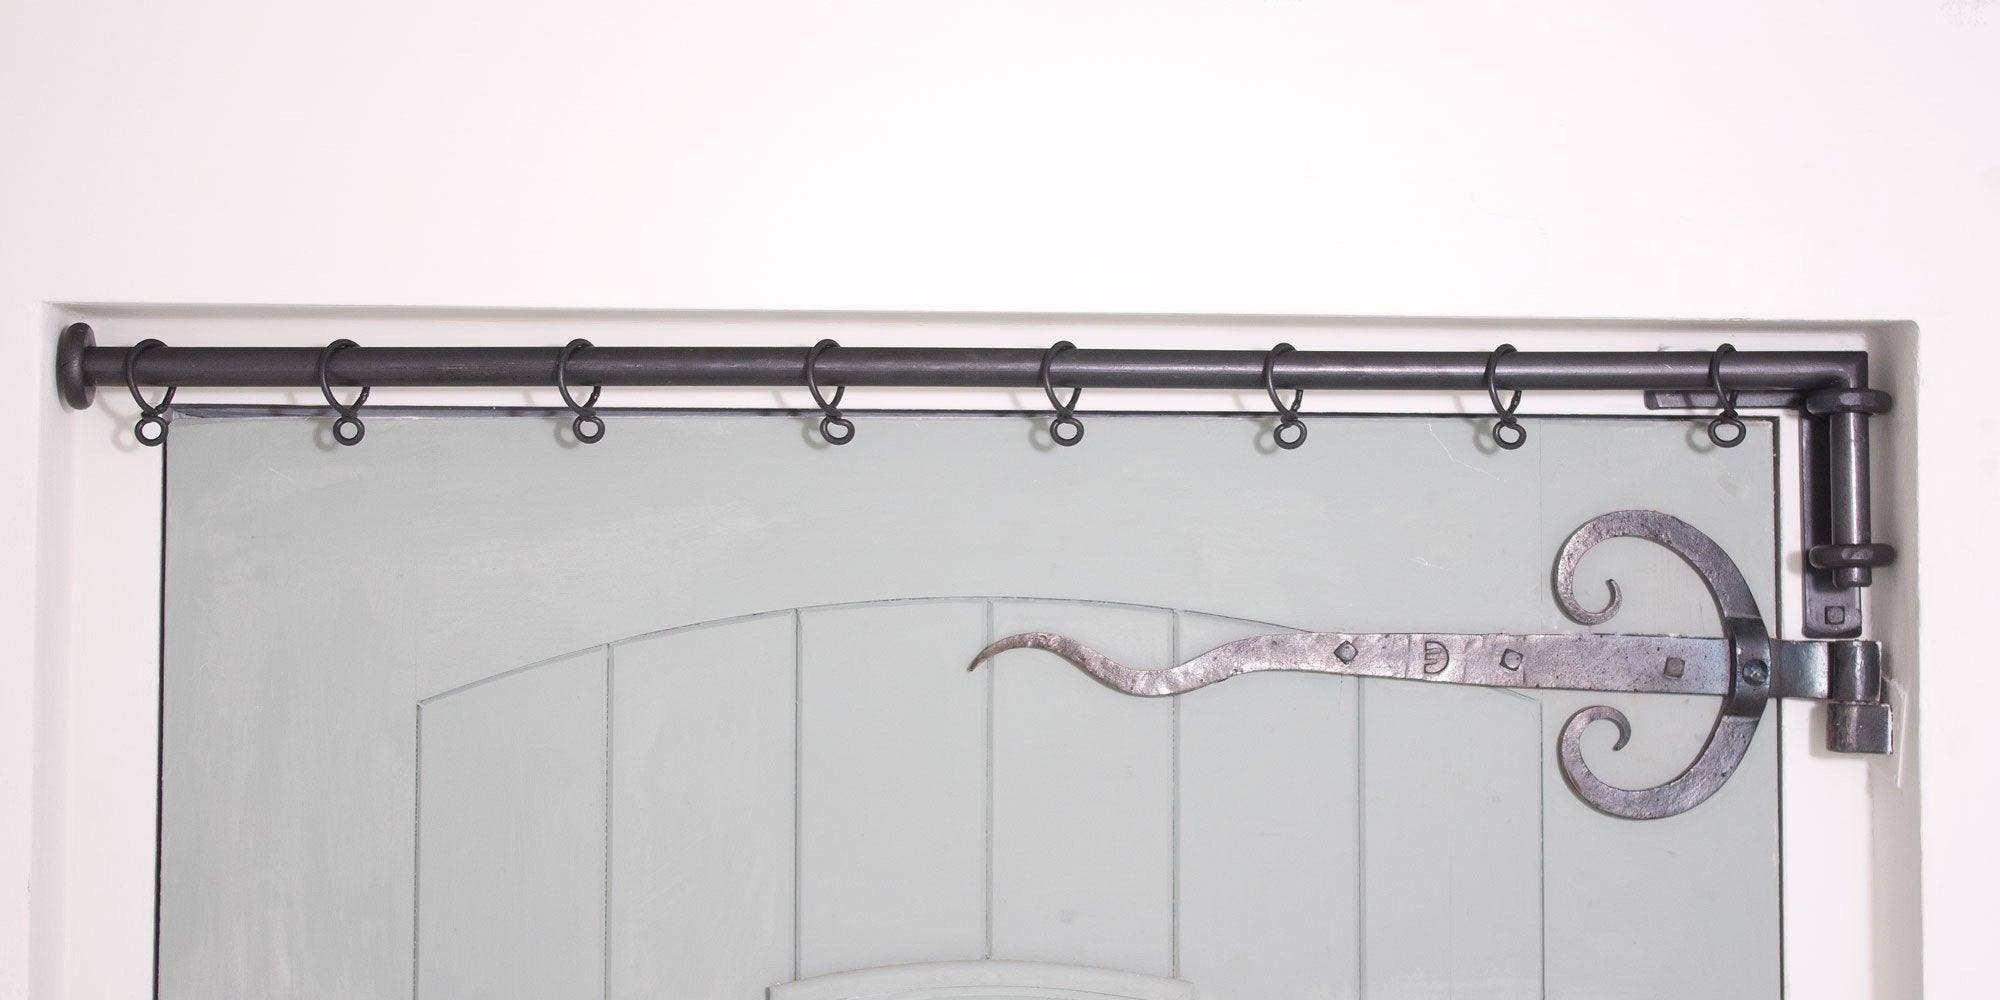 20mm Solid Wrought Iron Drapery Arm with L-Shaped Bracket